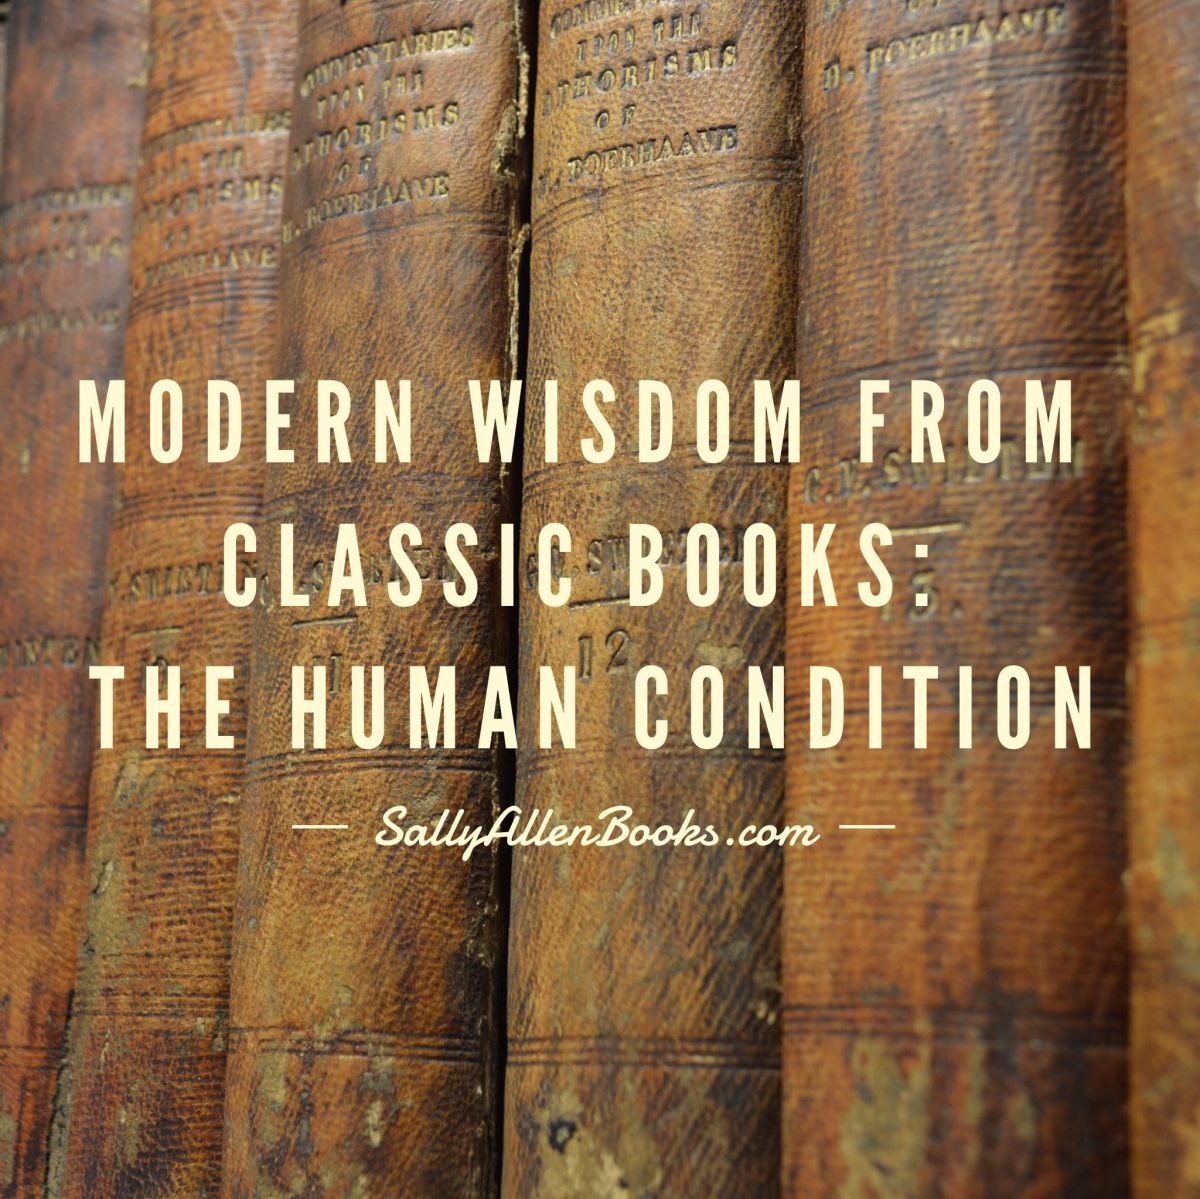 Modern Wisdom from Classic Books: The Human Condition